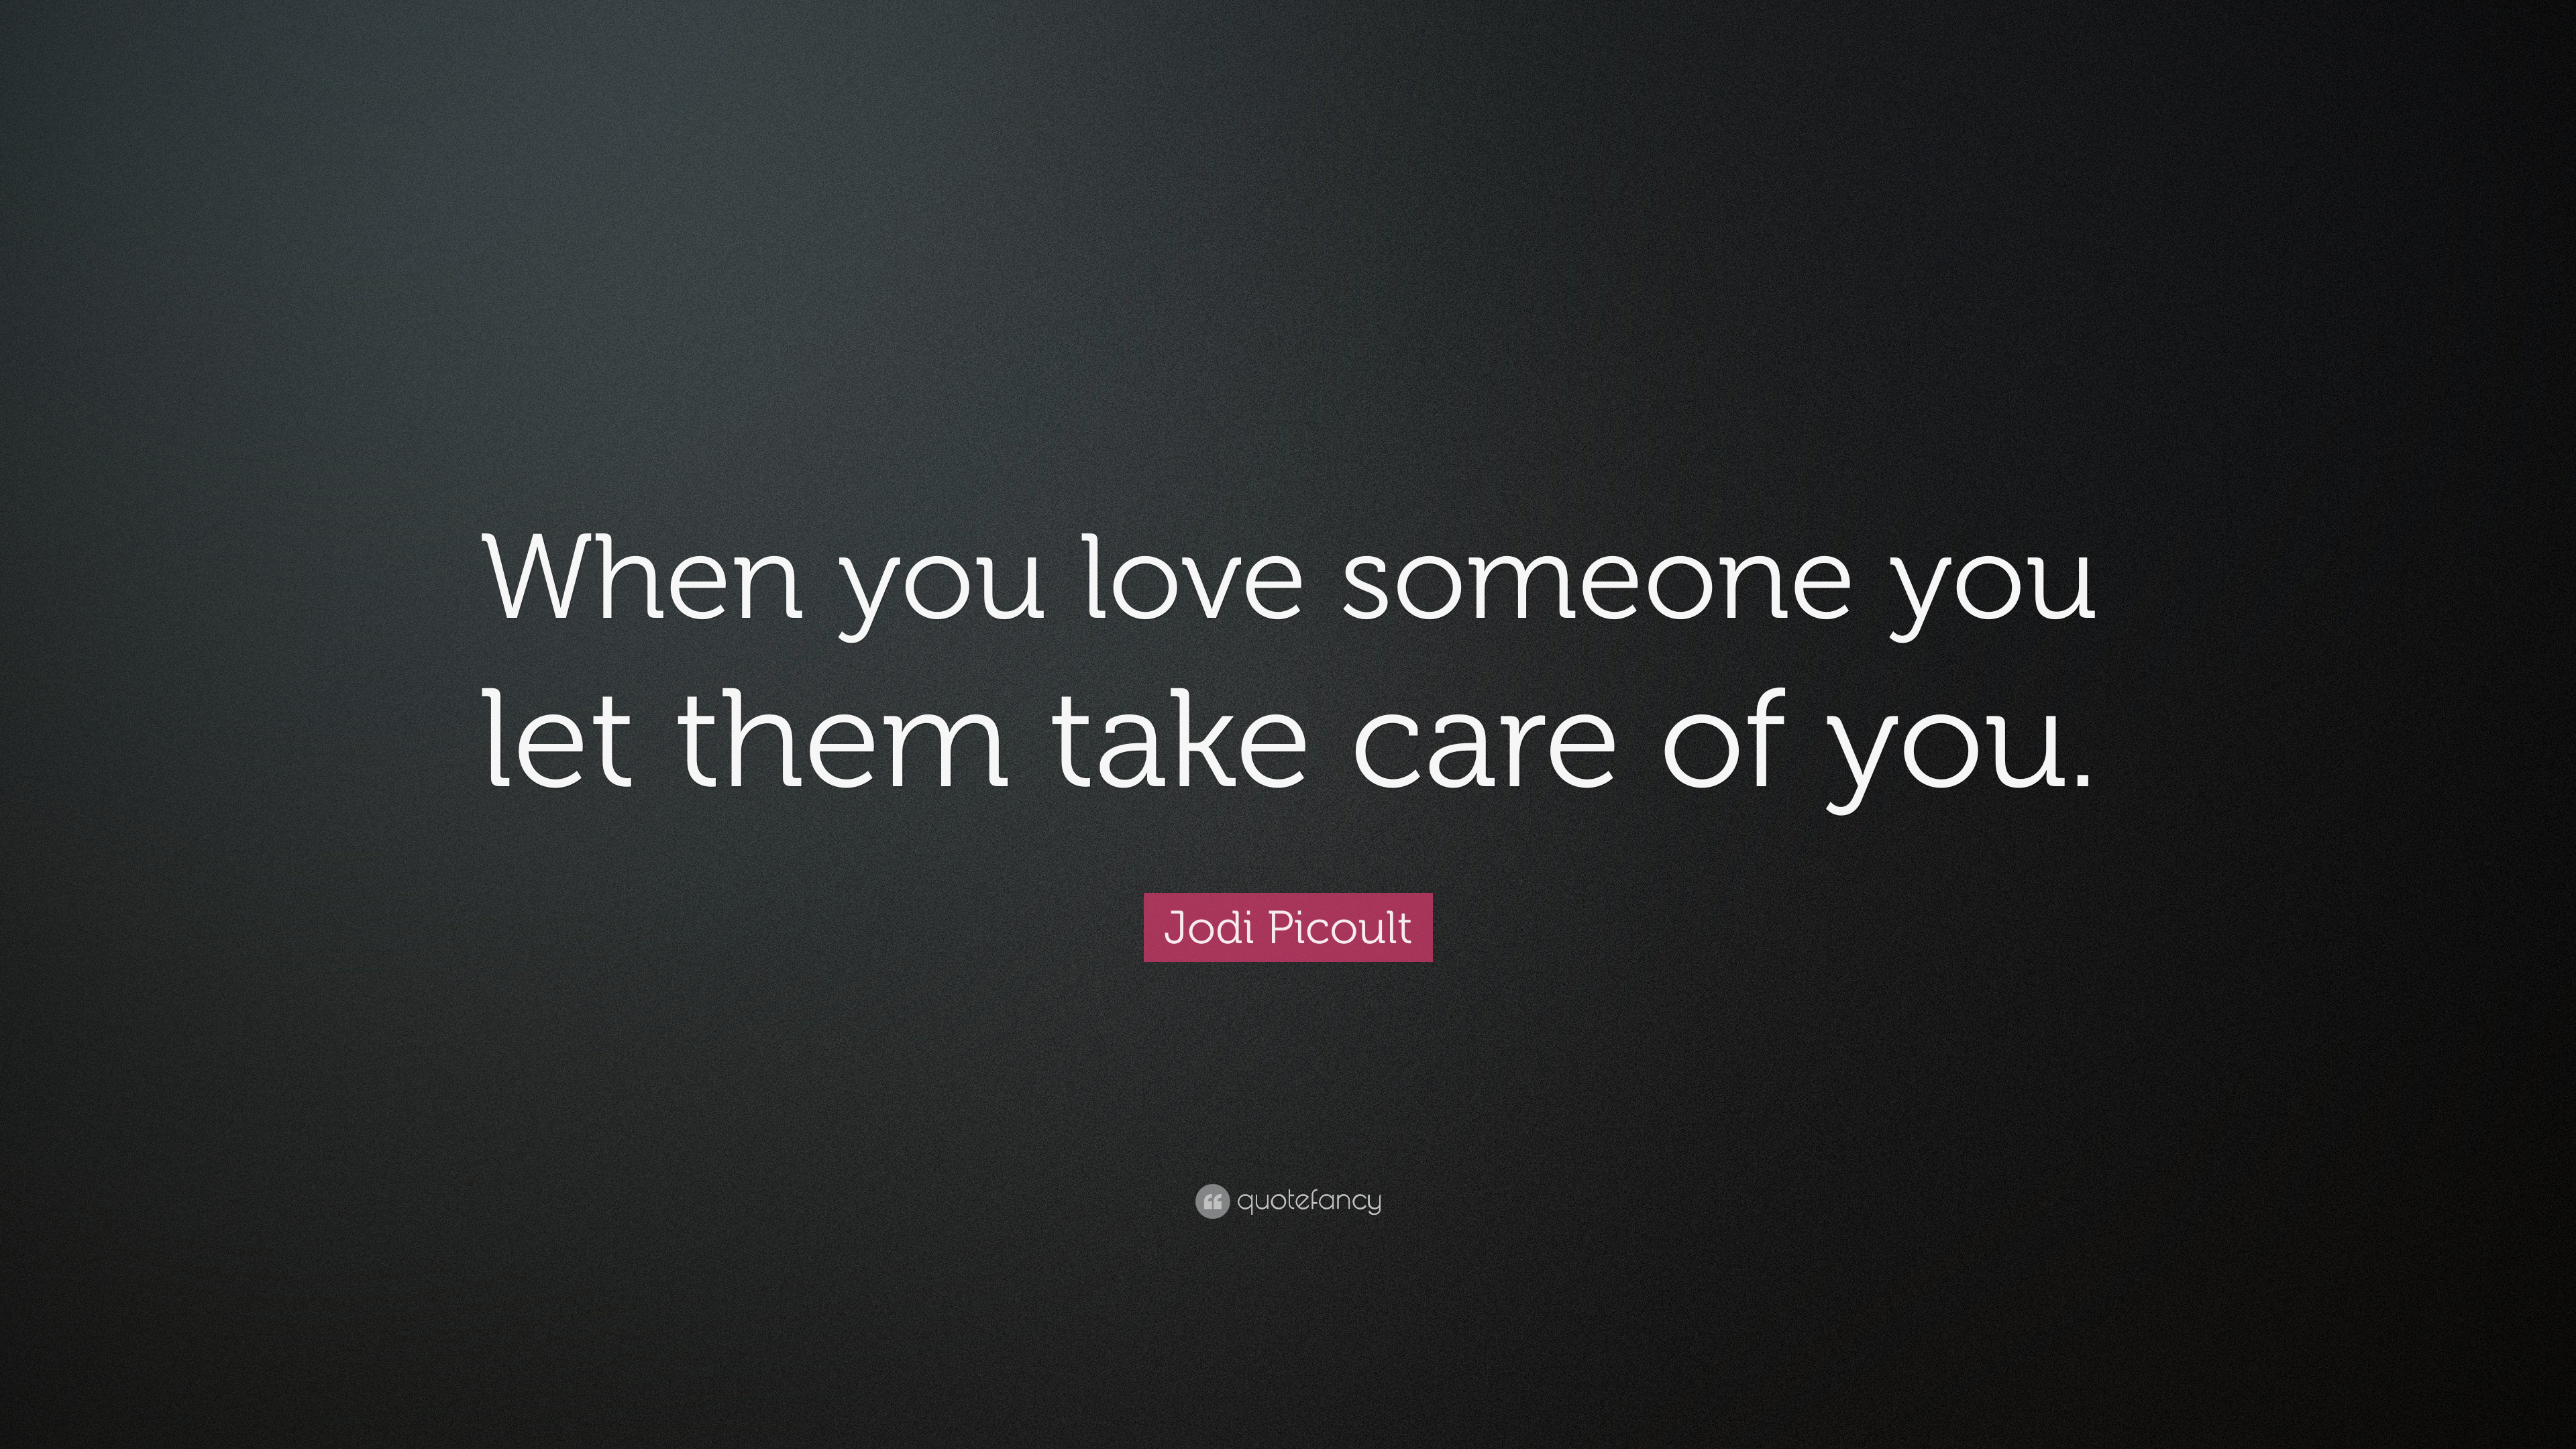 Jodi Picoult Quote When You Love Someone You Let Them Take Care Of